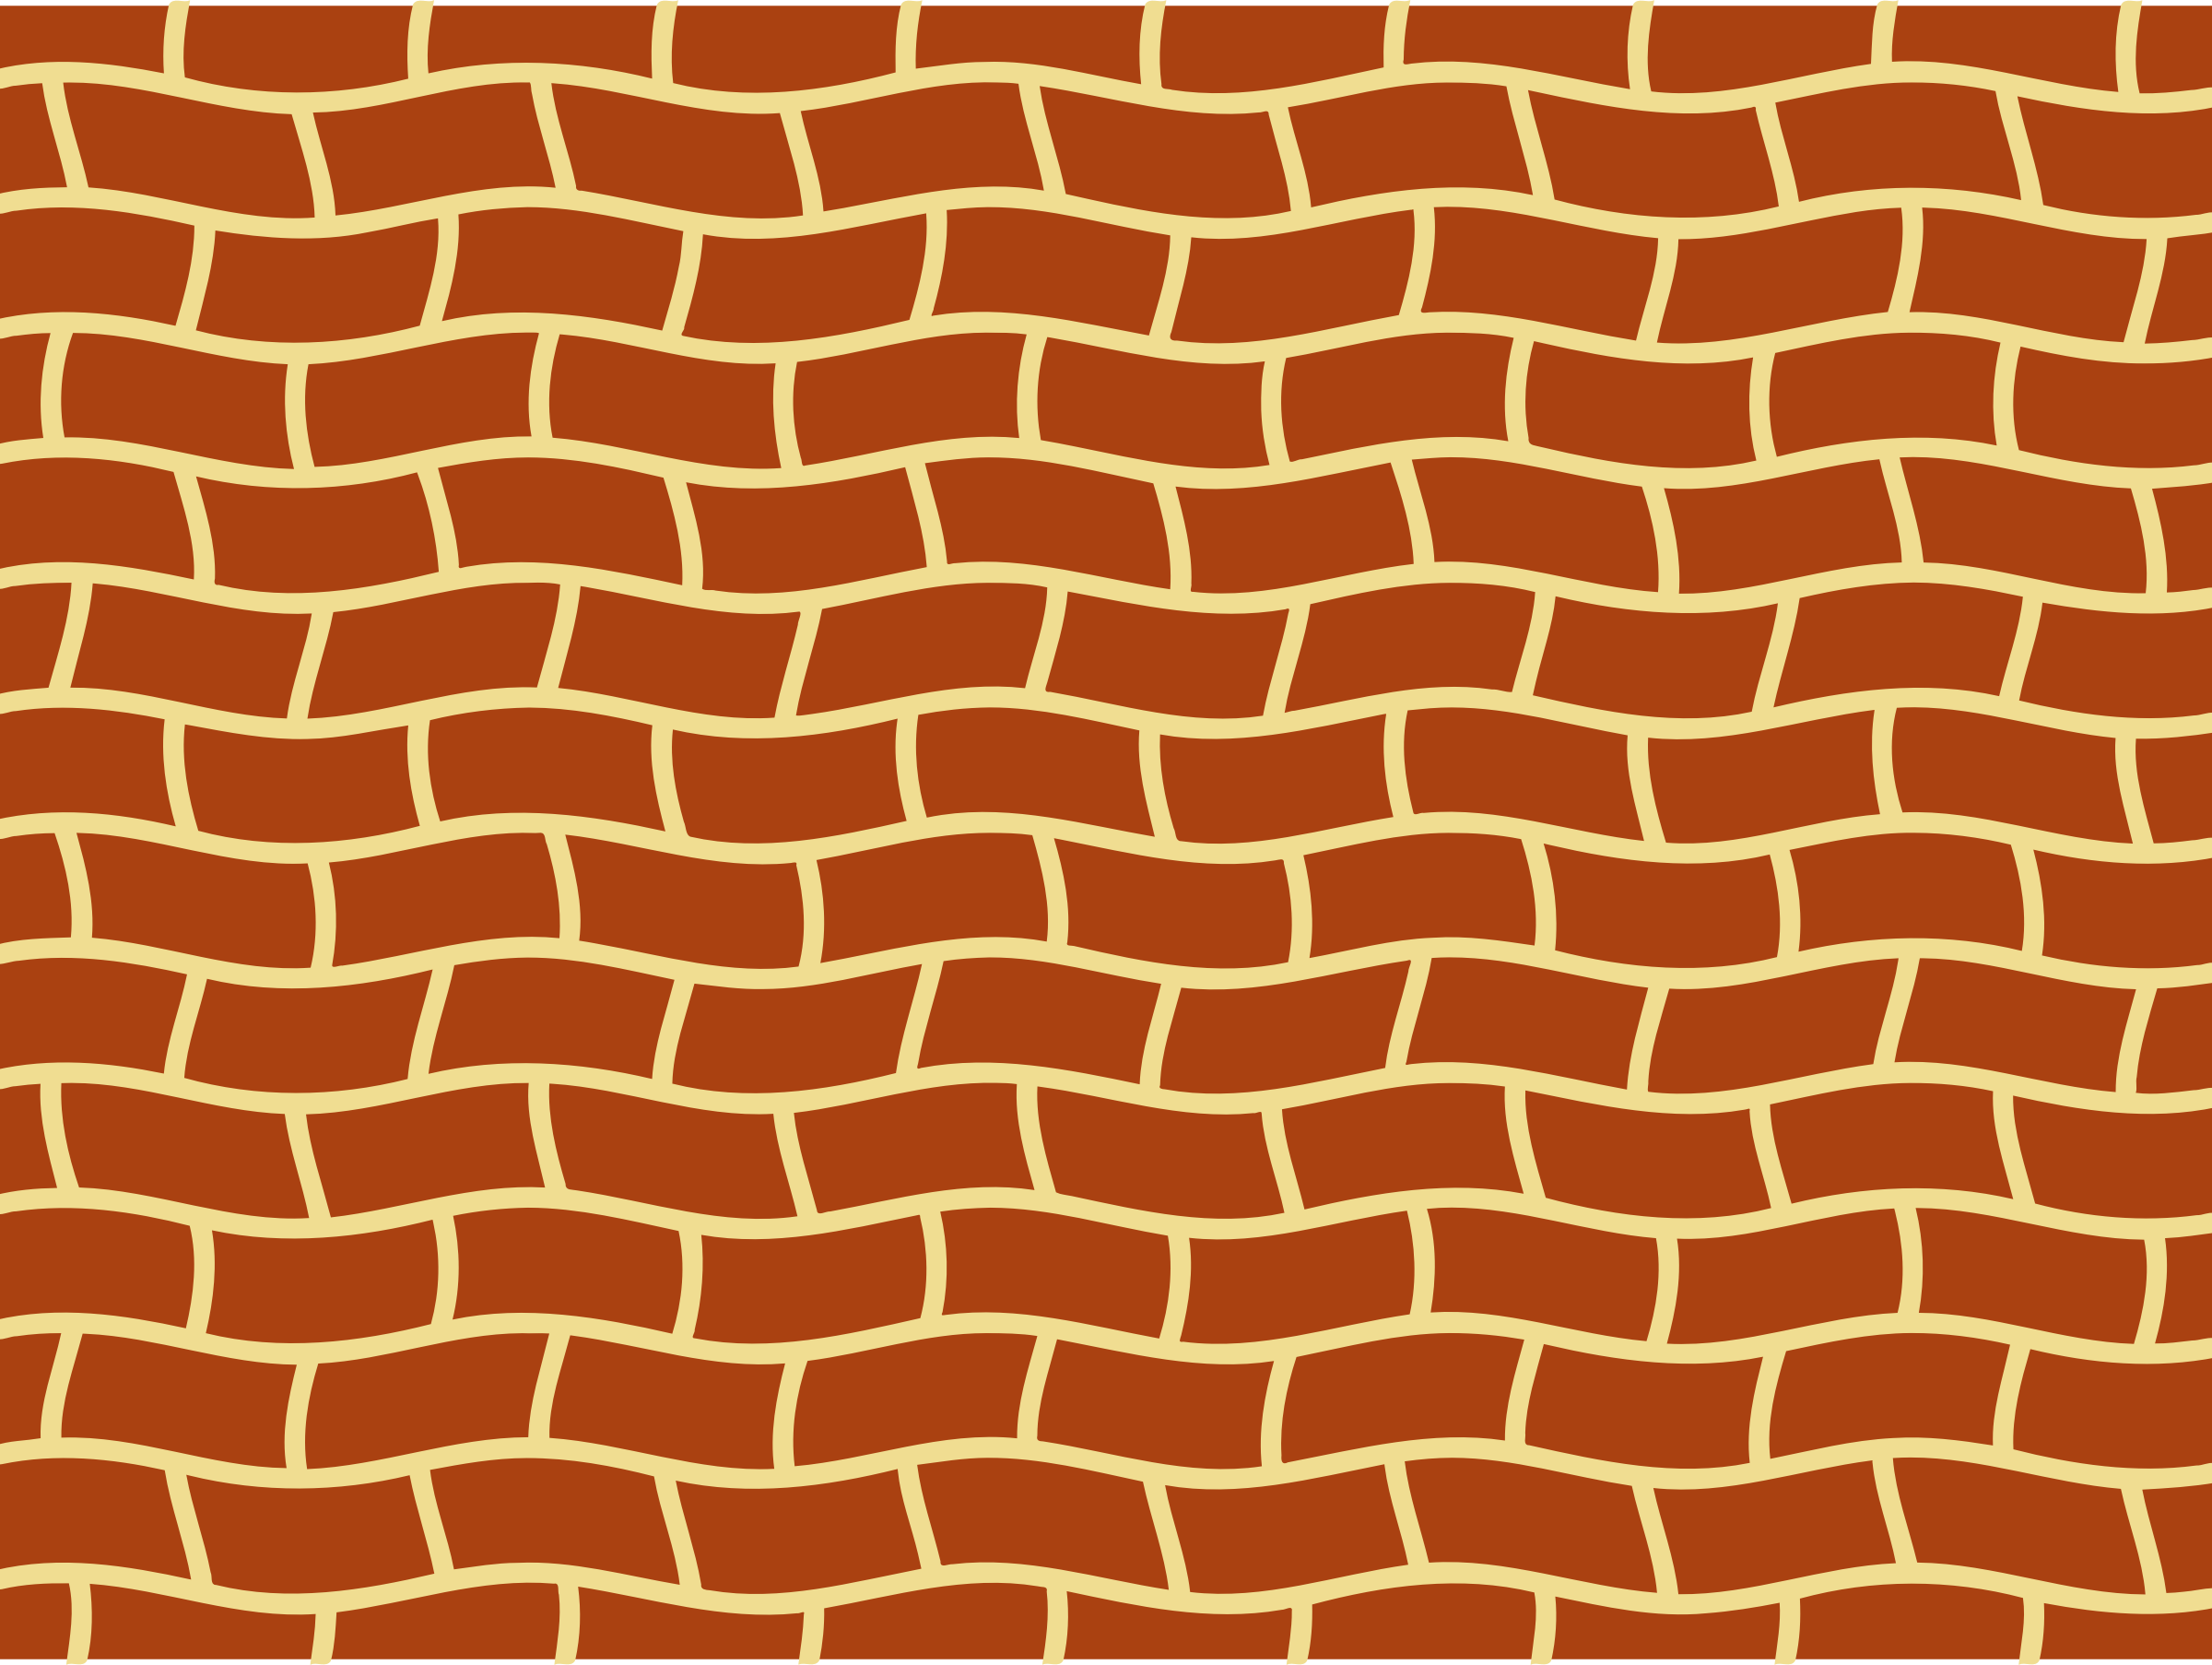 Wavy brick pattern by Firkin